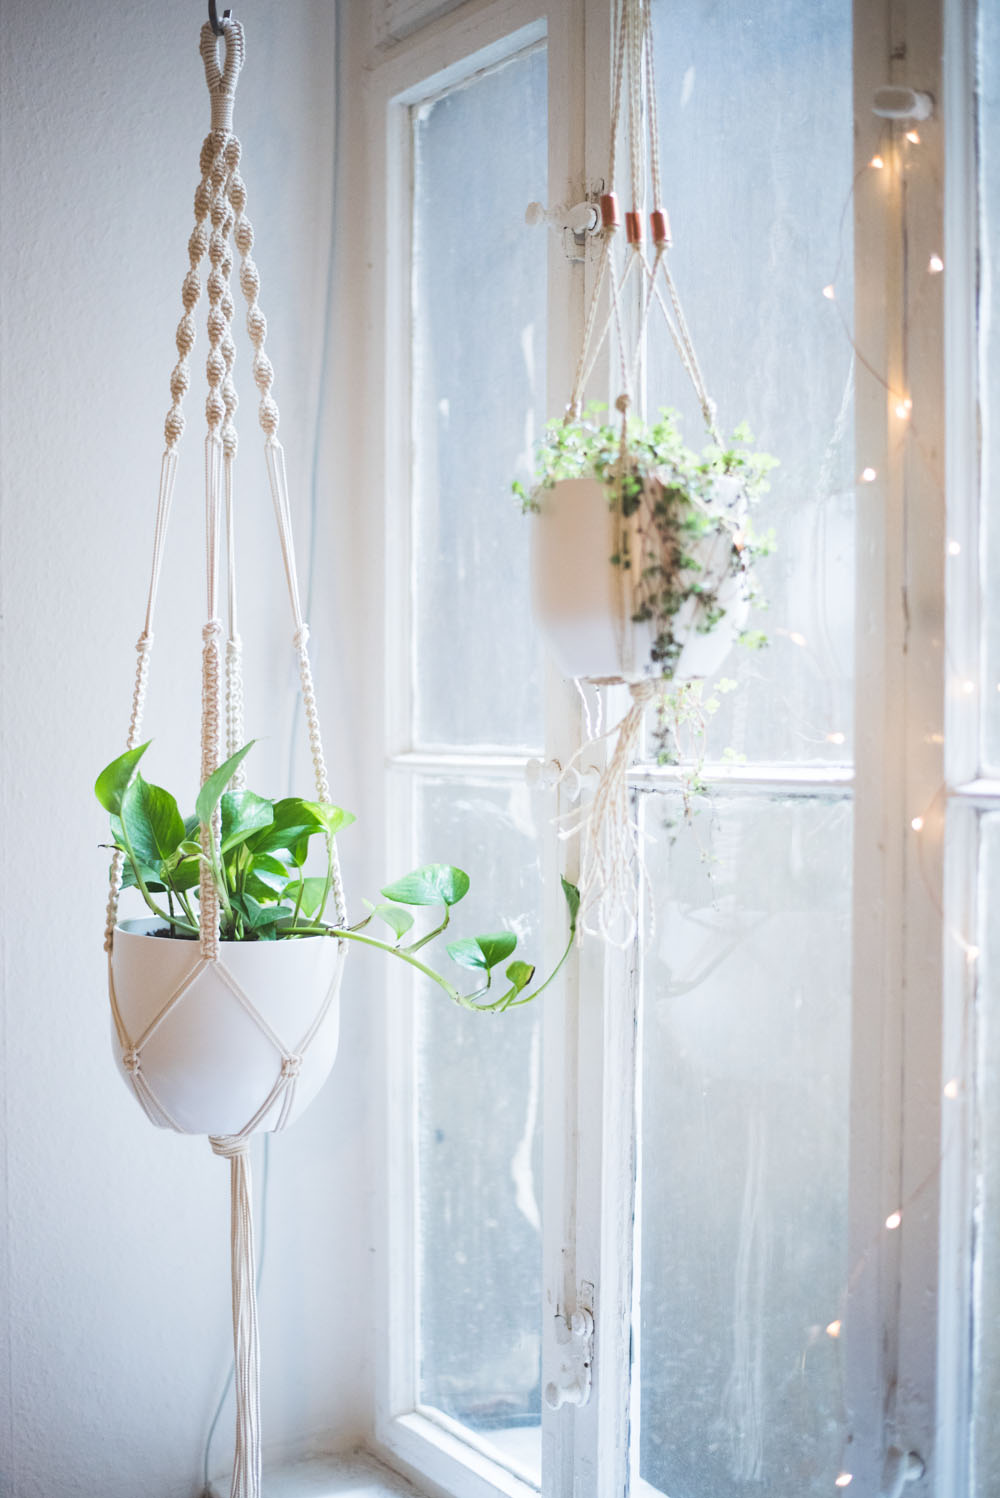 Hanging Plant Decor